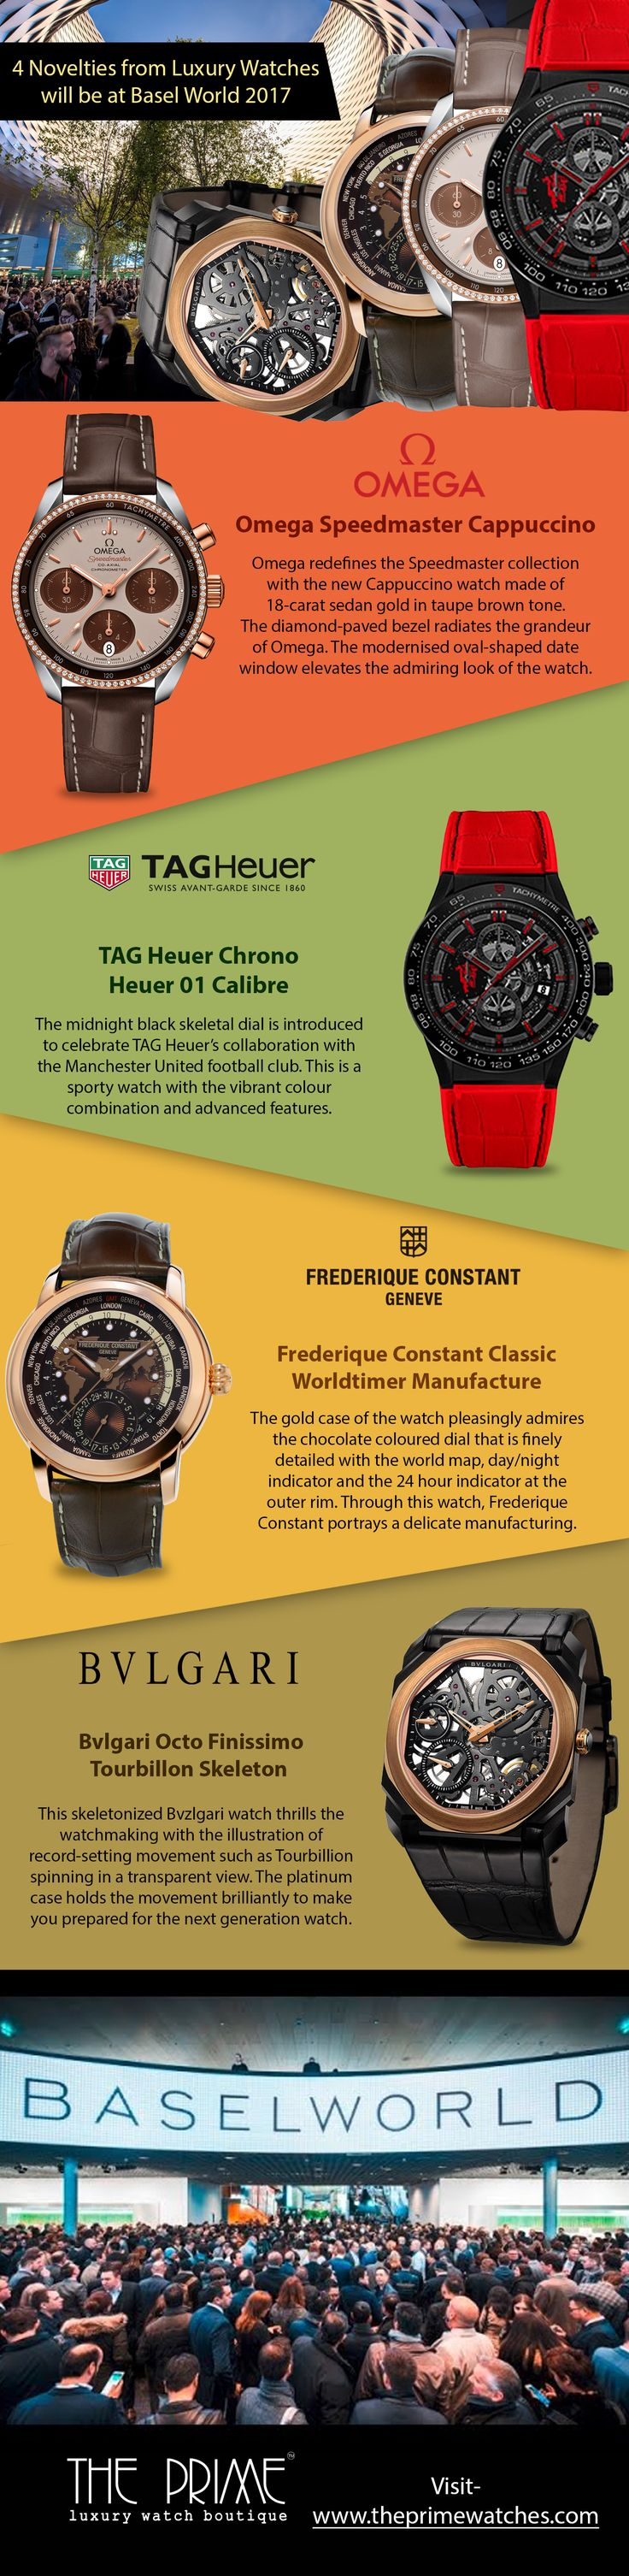 There are different watches brands that create luxury watches to cater the needs of watch lovers.These four extraordinary timepieces belong to Omega, TAG Heuer, Frederique Constant and Bulgari.